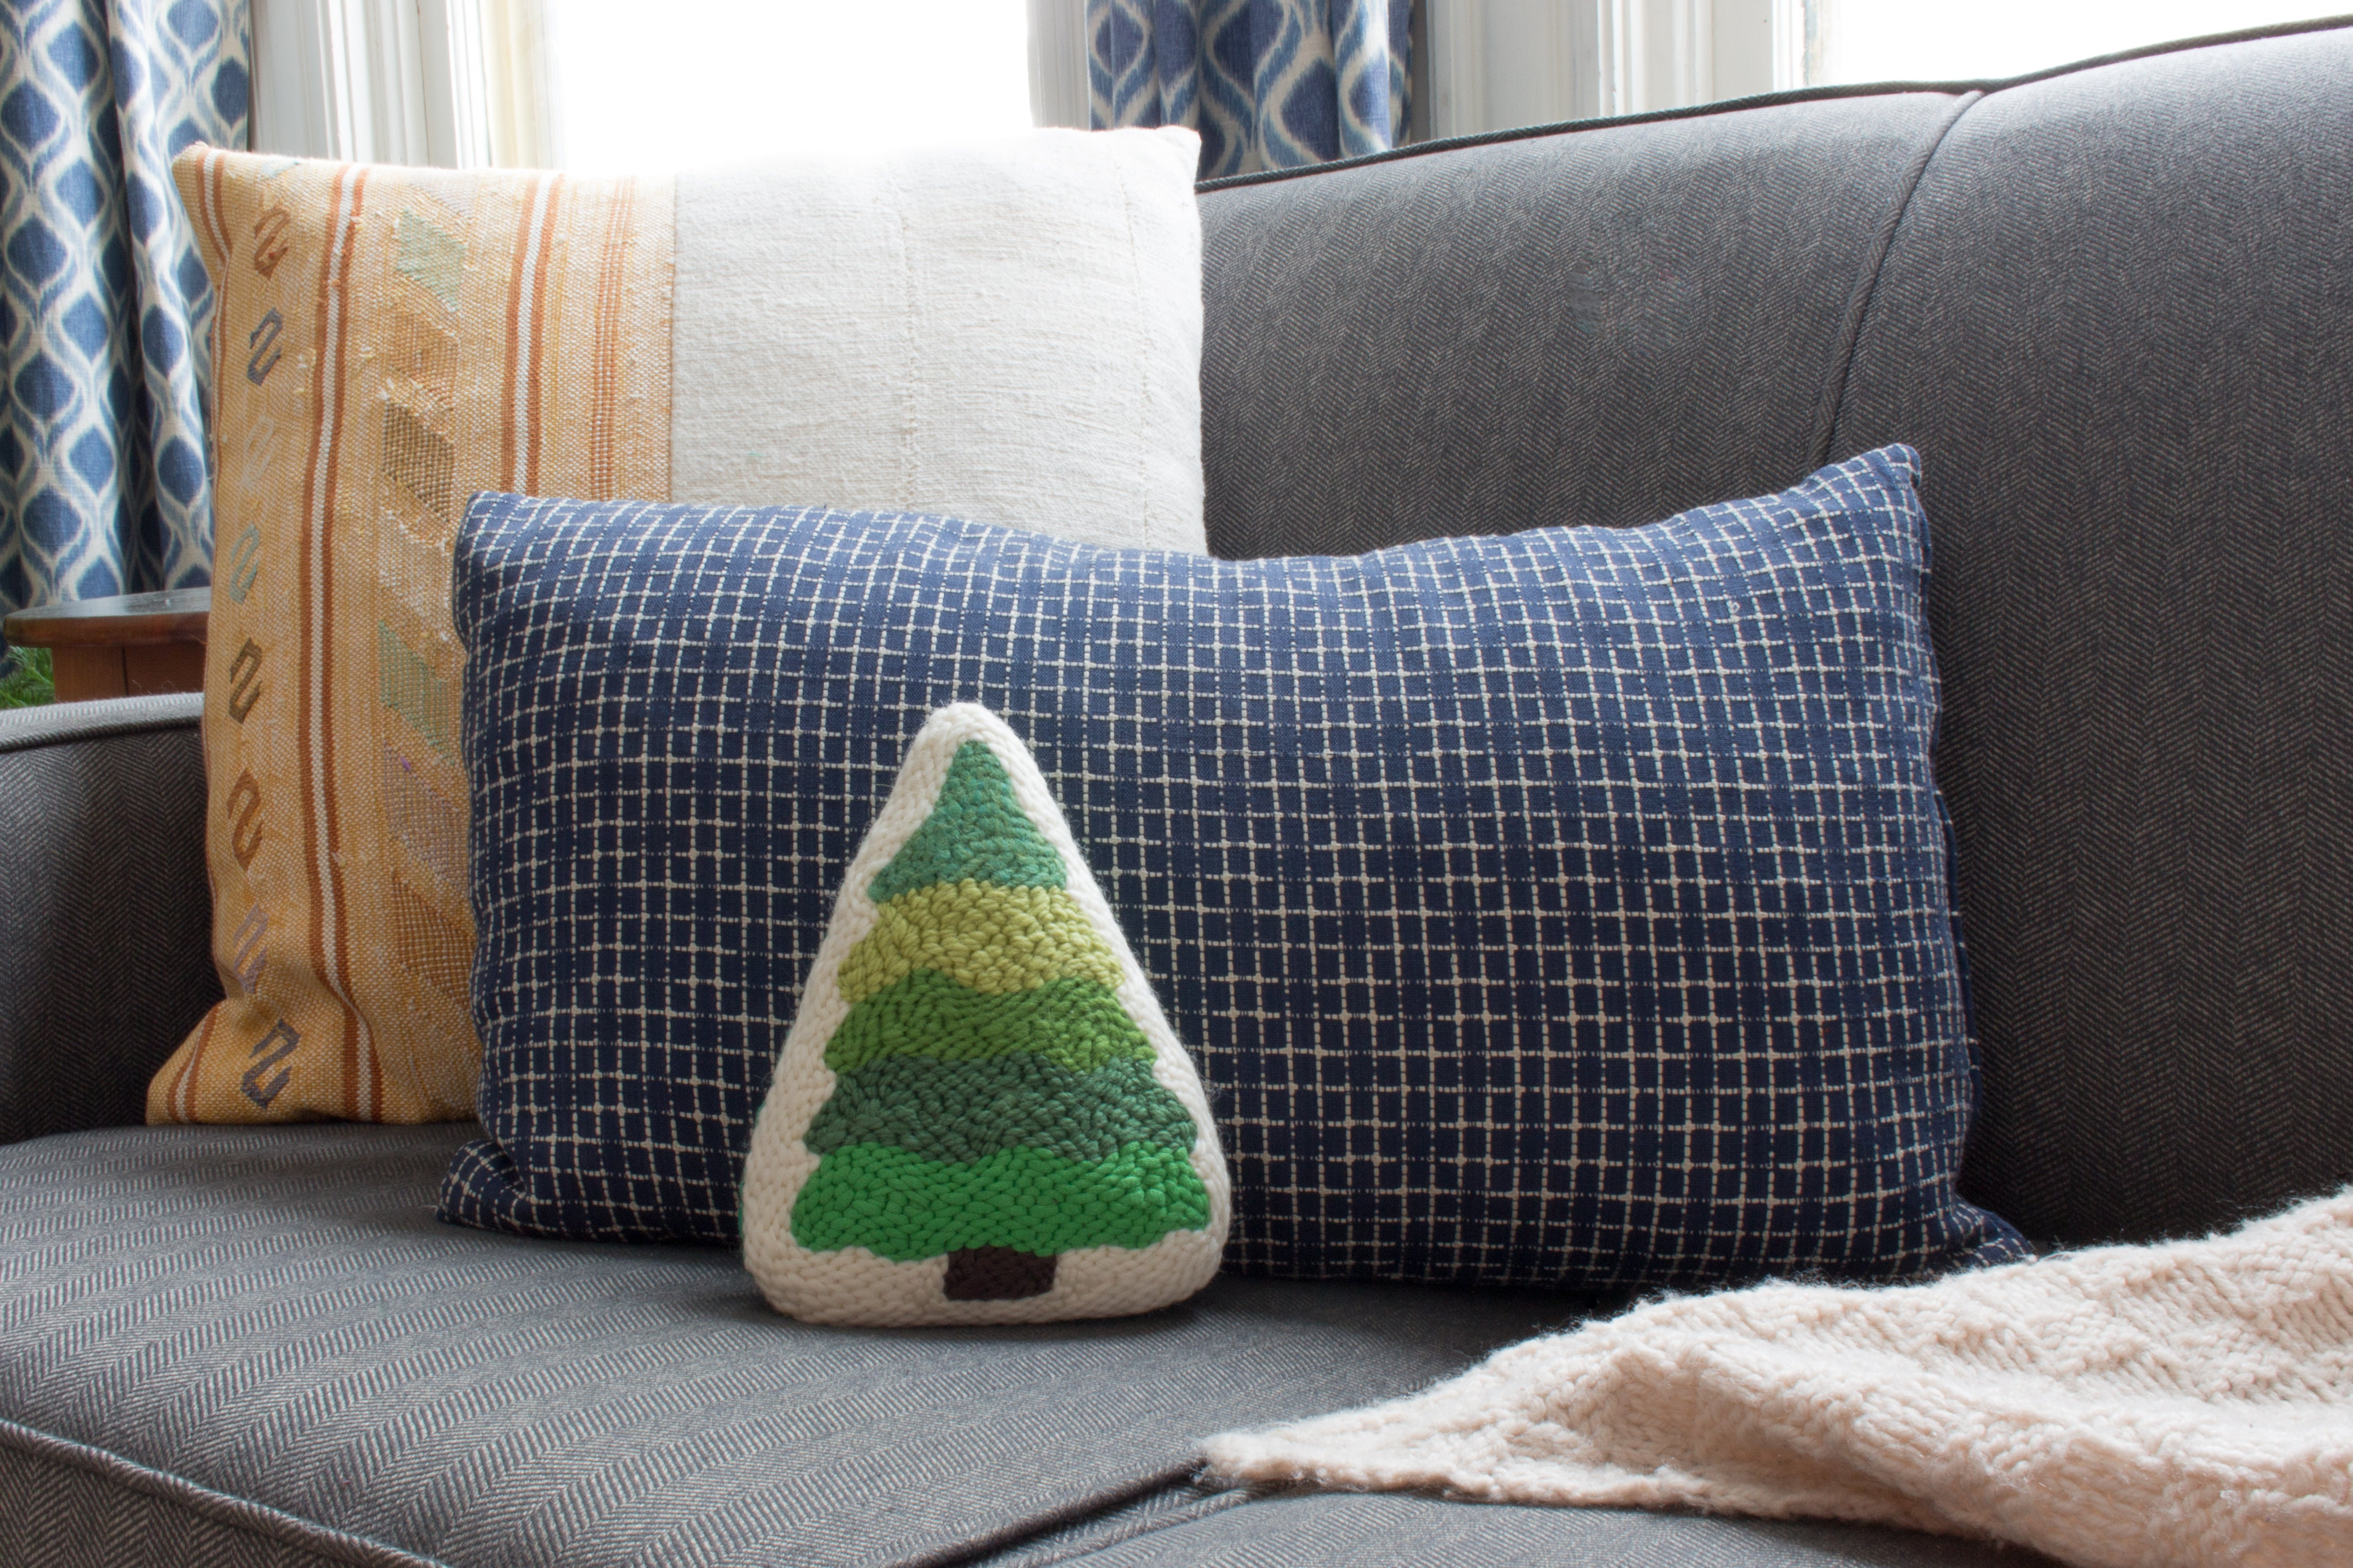 Punch needle tree pillow